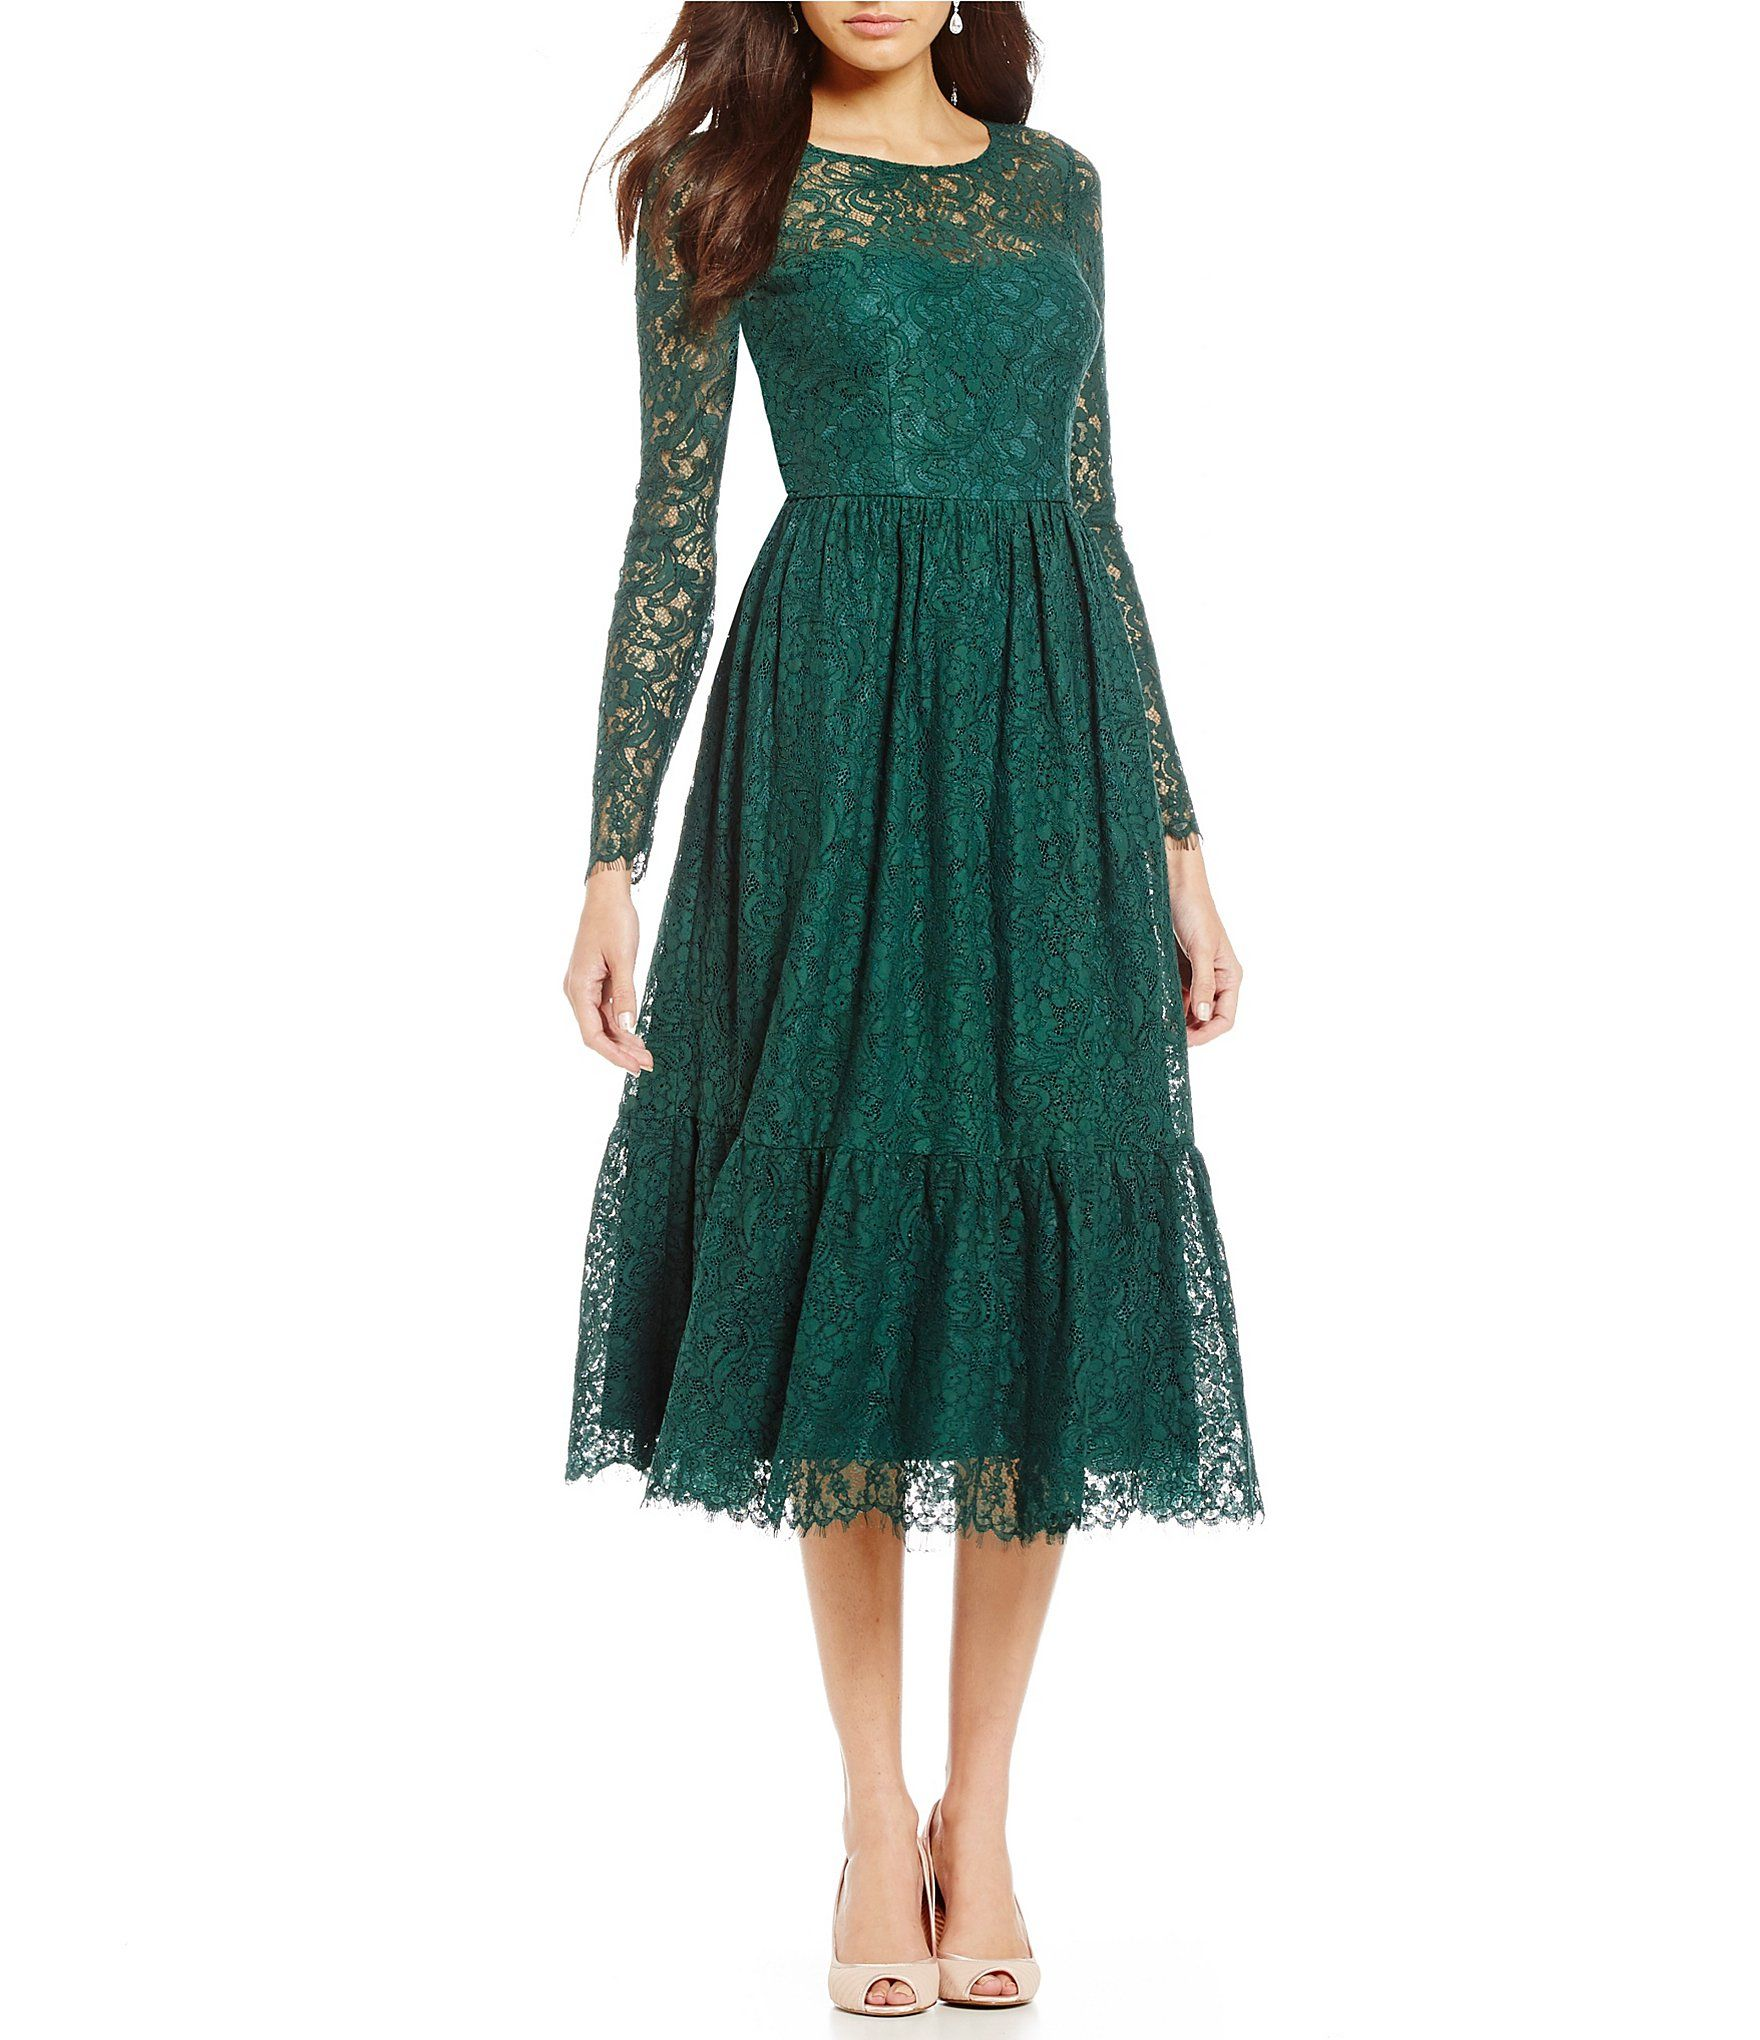 9ea8d64f892 Shop for Adrianna Papell Long Sleeve Lace Midi Dress at Dillards.com. Visit  Dillards.com to find clothing